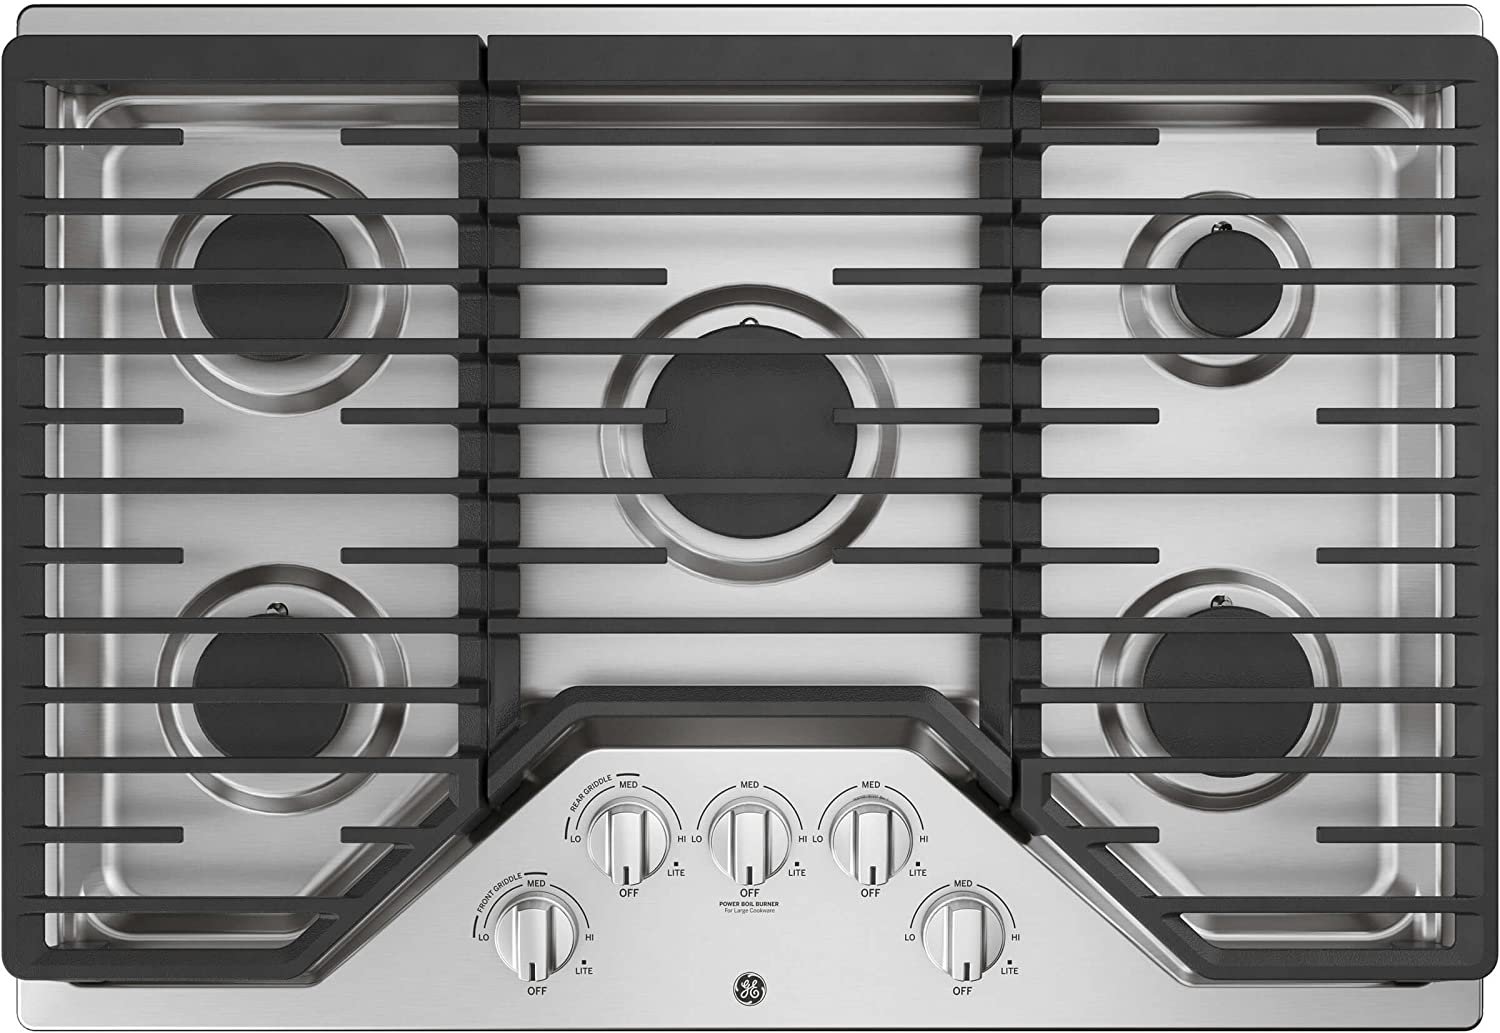 Choose Top 8 Best gas range for Home Chef in 2020 14